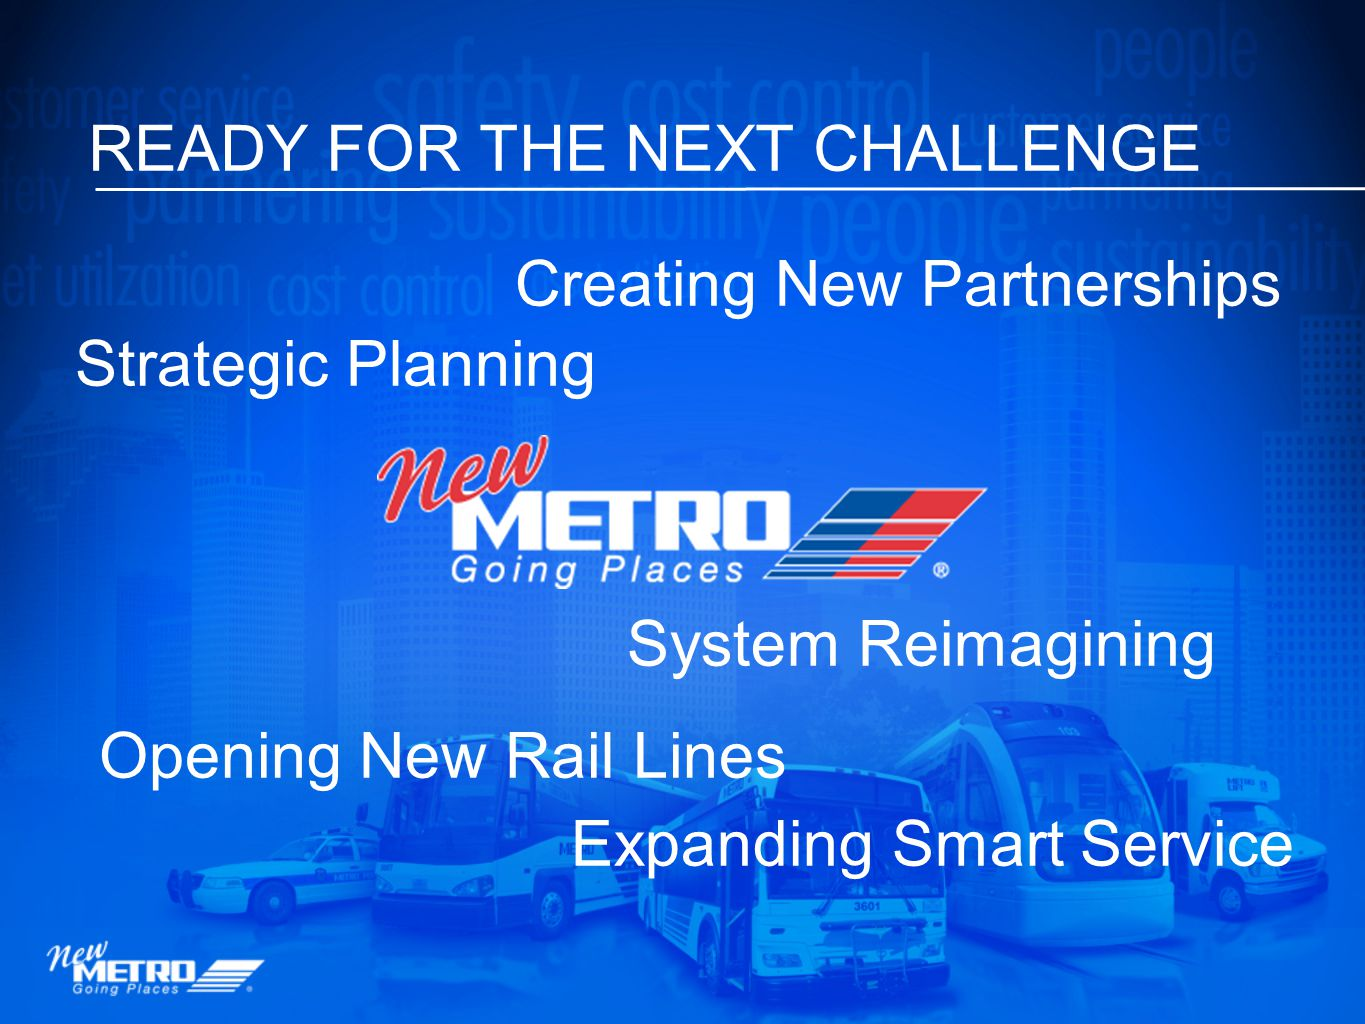 READY FOR THE NEXT CHALLENGE Strategic Planning System Reimagining Opening New Rail Lines Expanding Smart Service Creating New Partnerships